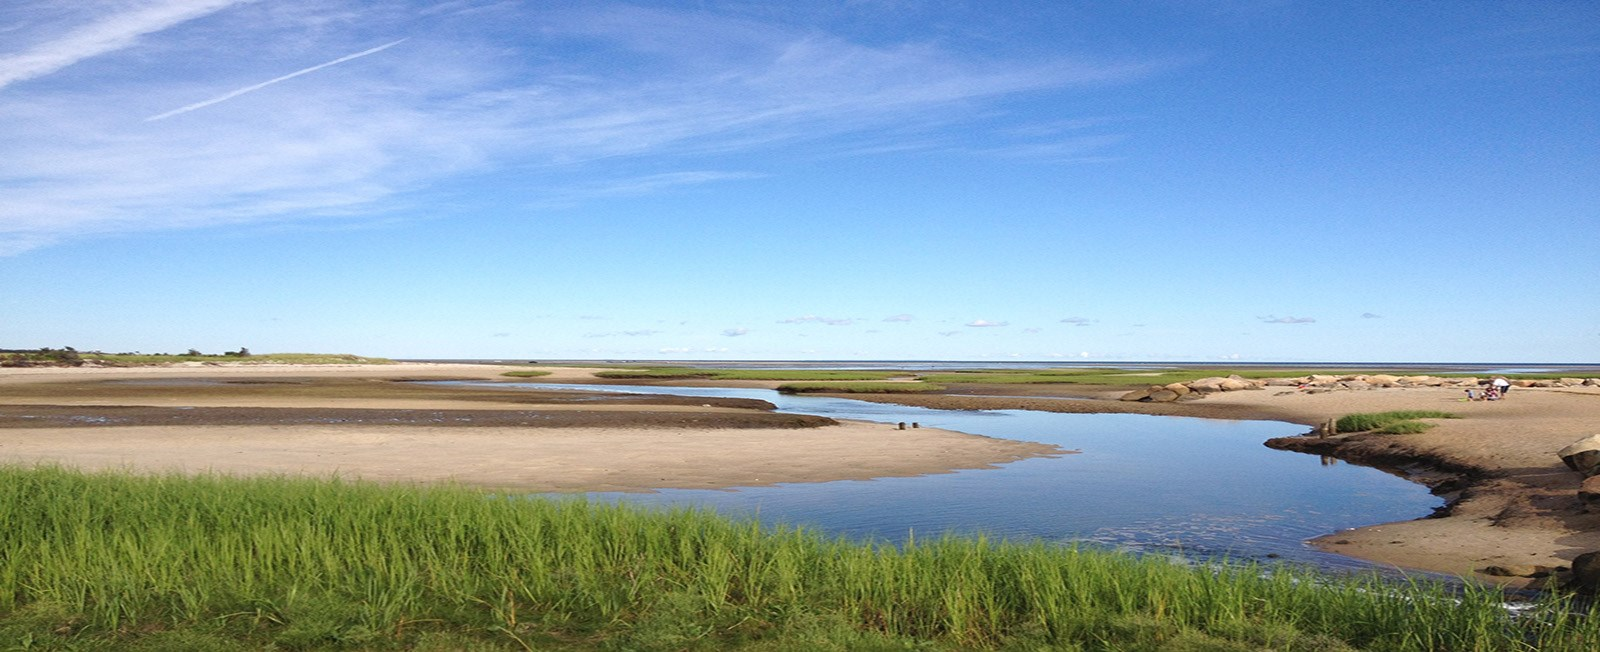 Looking to visit Brewster beaches? Check out these nearby attractions!